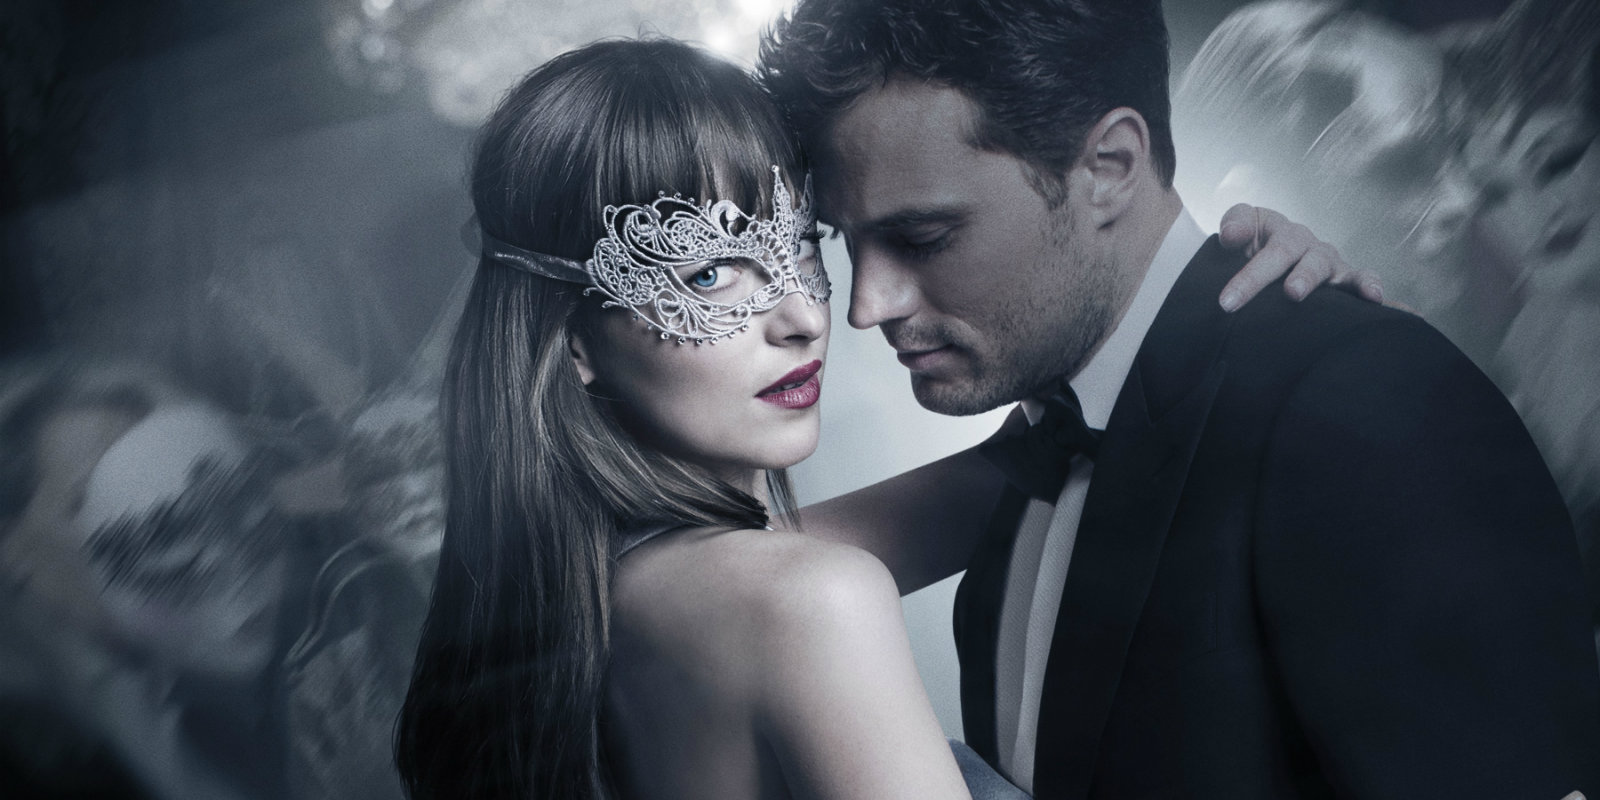 Fifty Shades Darker - poster (cropped)